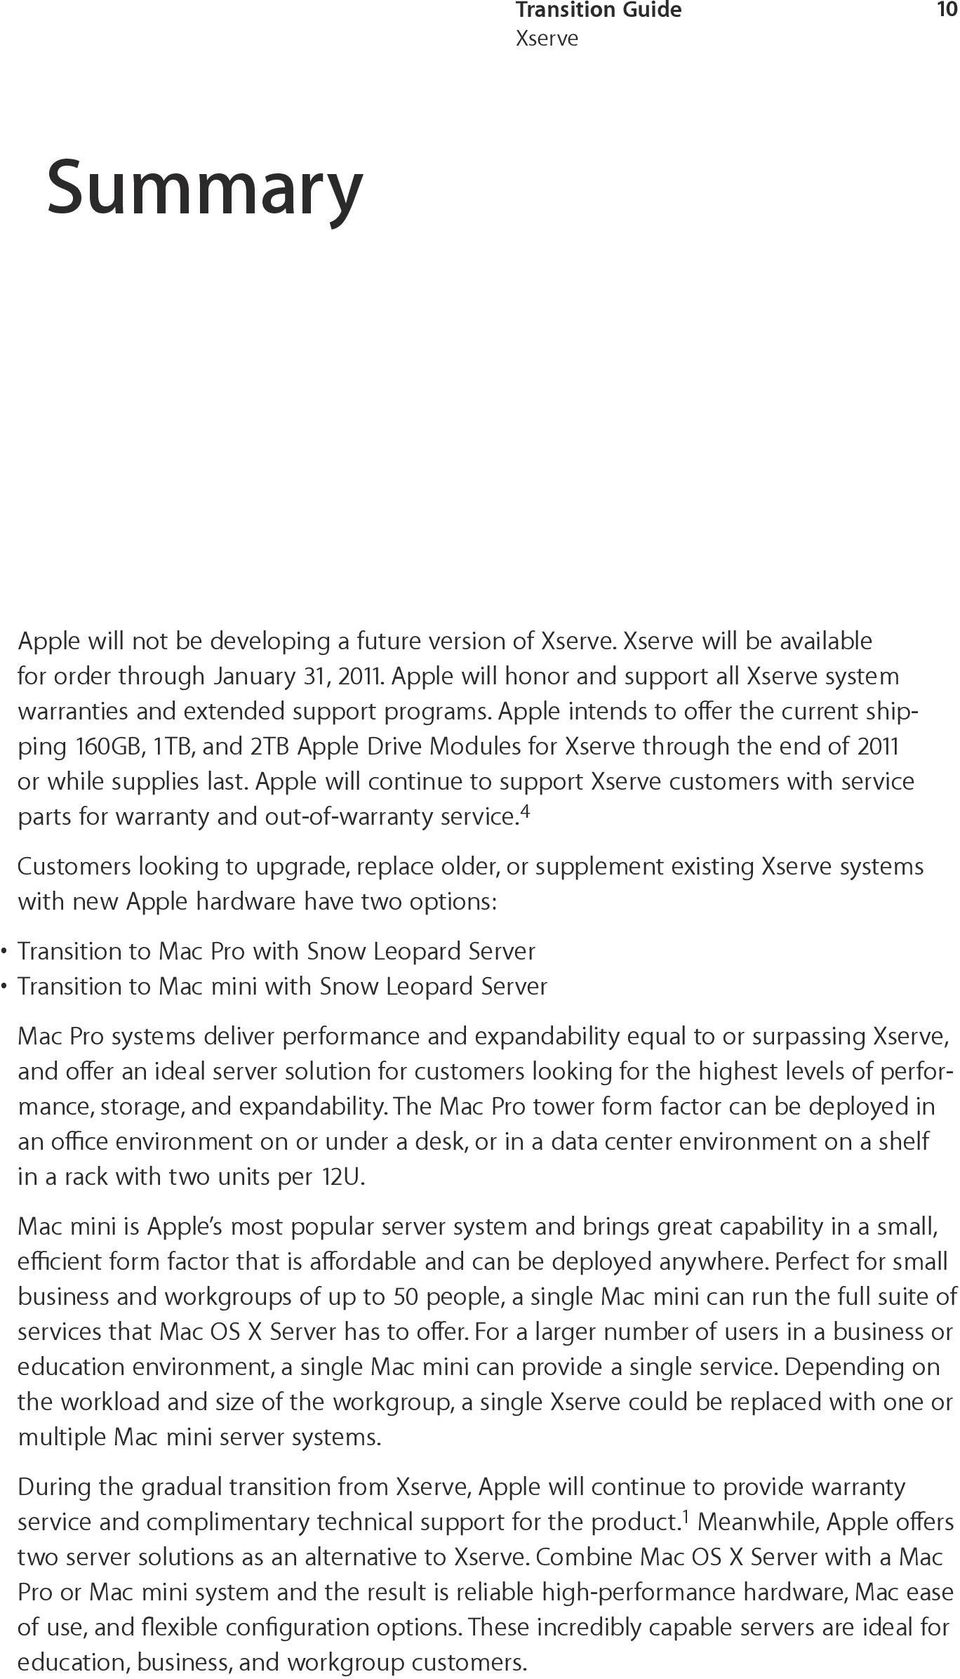 Apple will continue to support customers with service parts for warranty and out-of-warranty service.